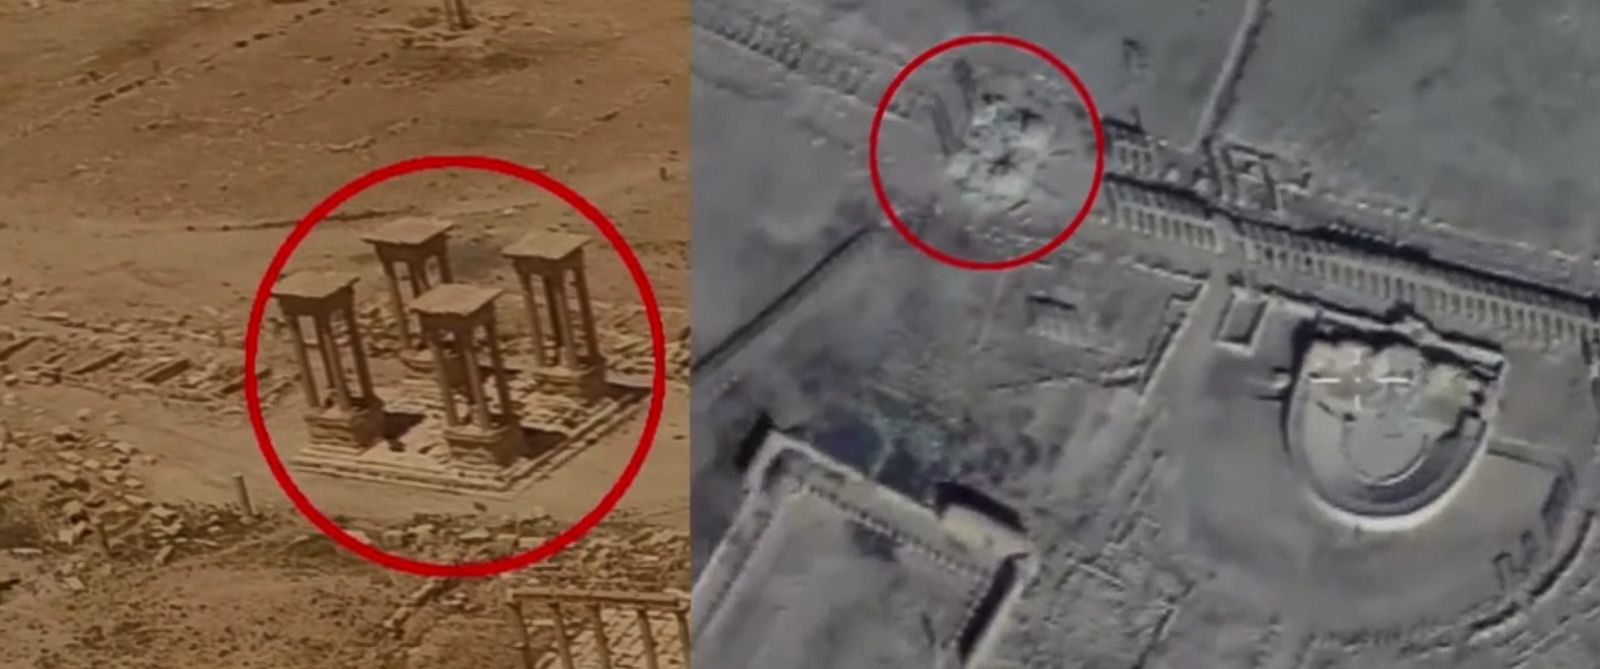 VIDEO: The Russian Defense Ministry released drone footage on Monday showing what it claims is new damage to Palmyras archaeological site.